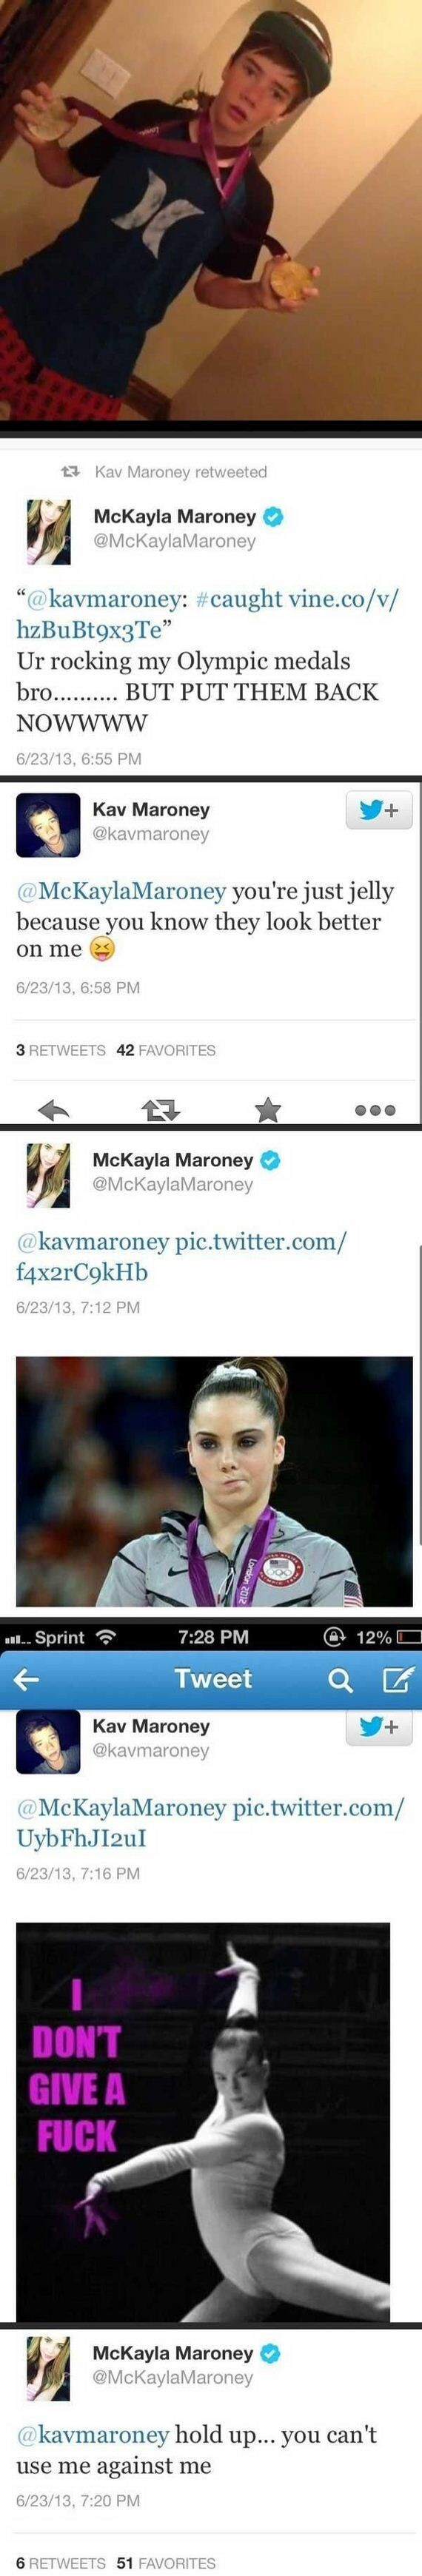 McKayla Maroney vs Her Brother